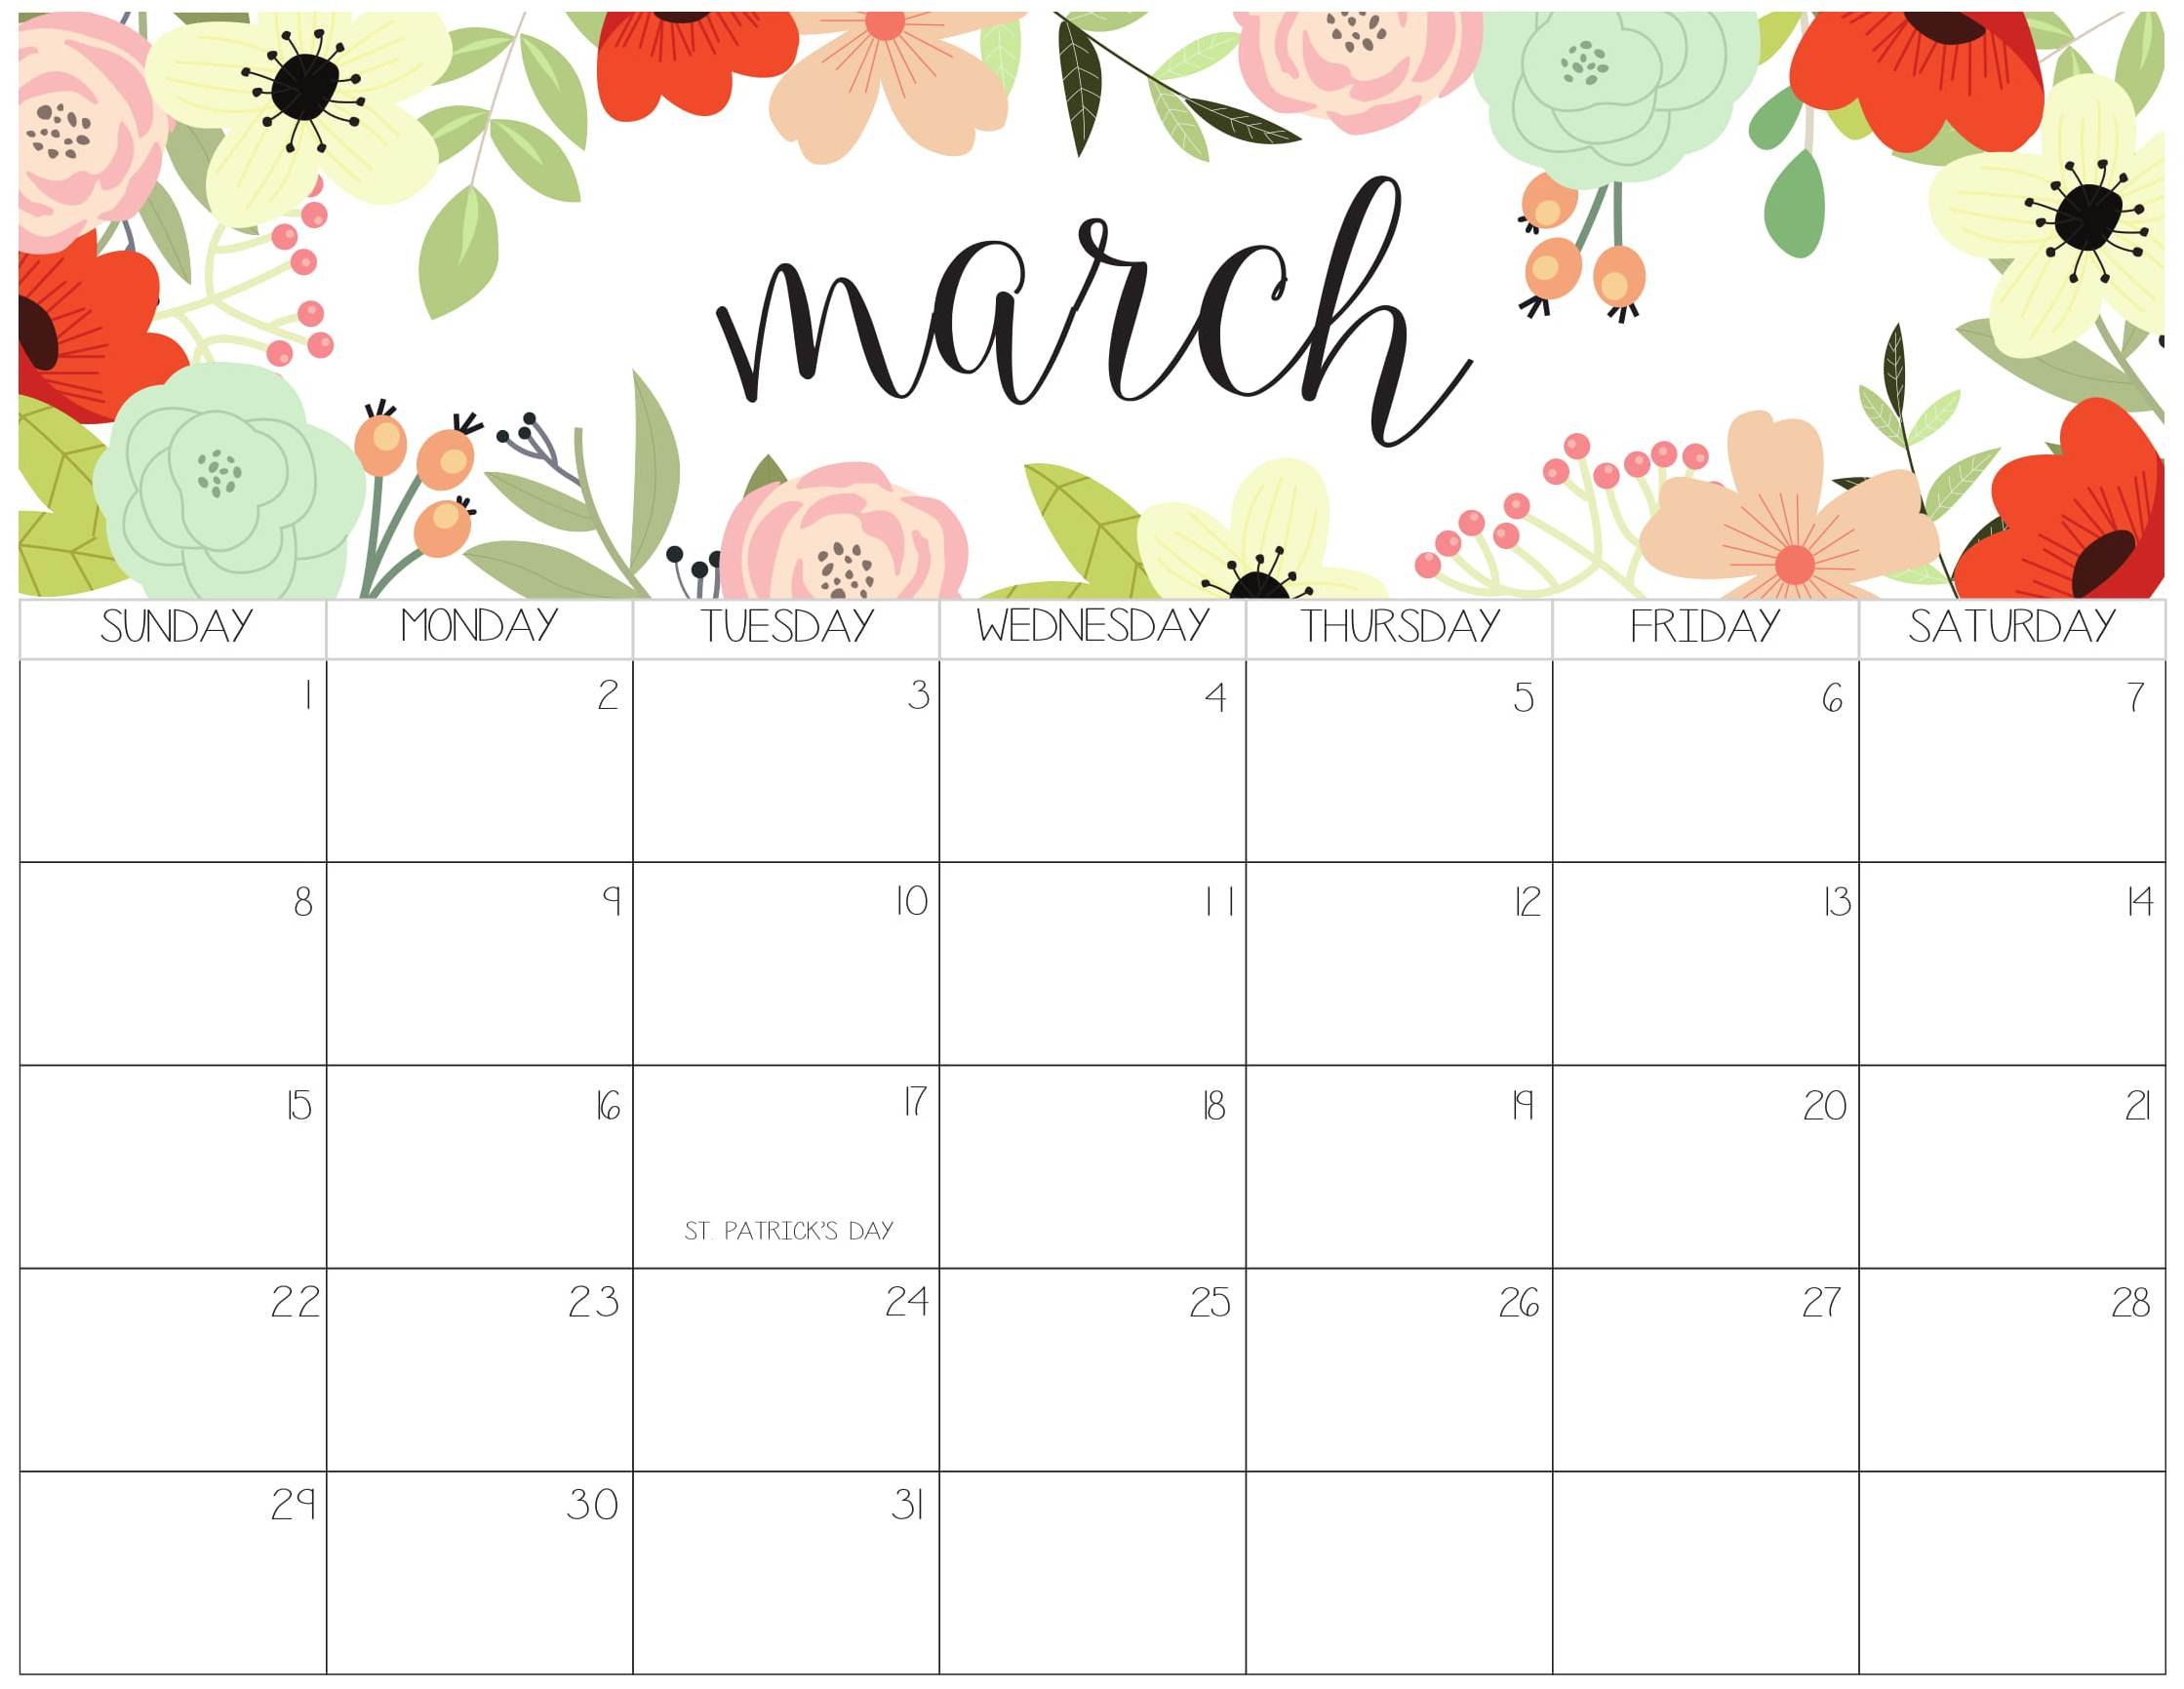 Cute March 2020 Calendar Archives   2019 Calendars for Students 2239x1732